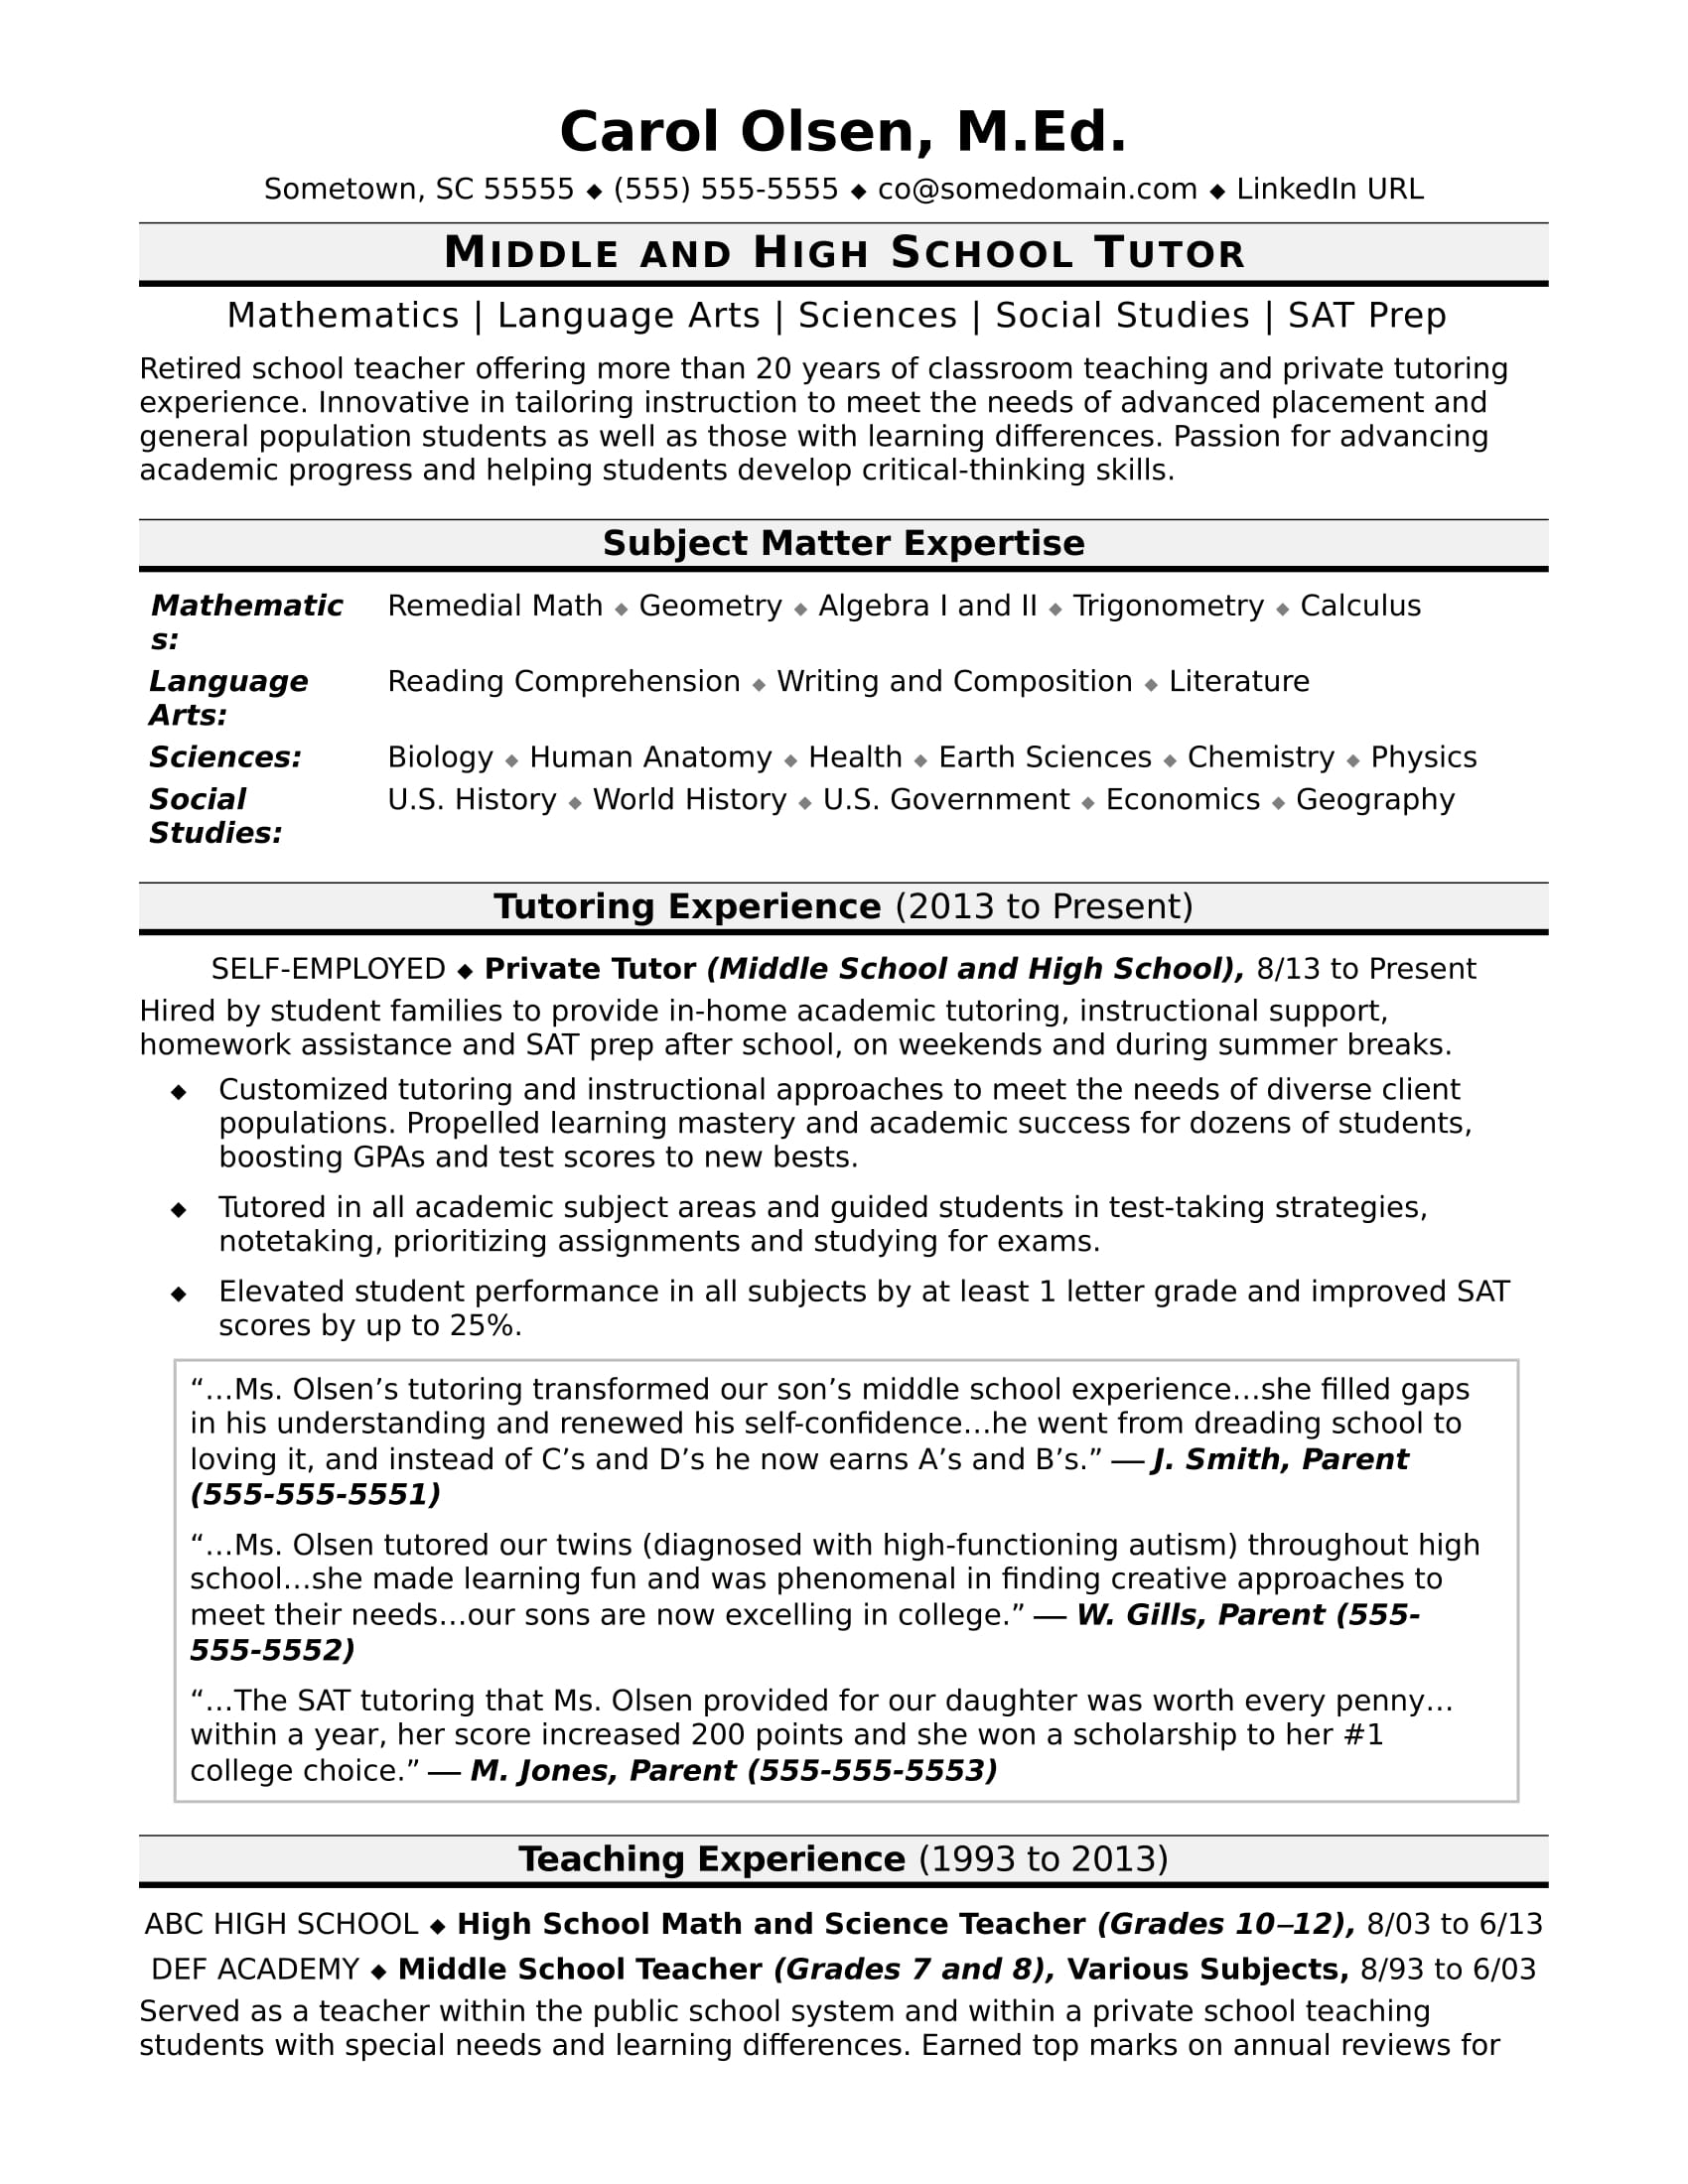 Tutor Resume Sample | Monster.com